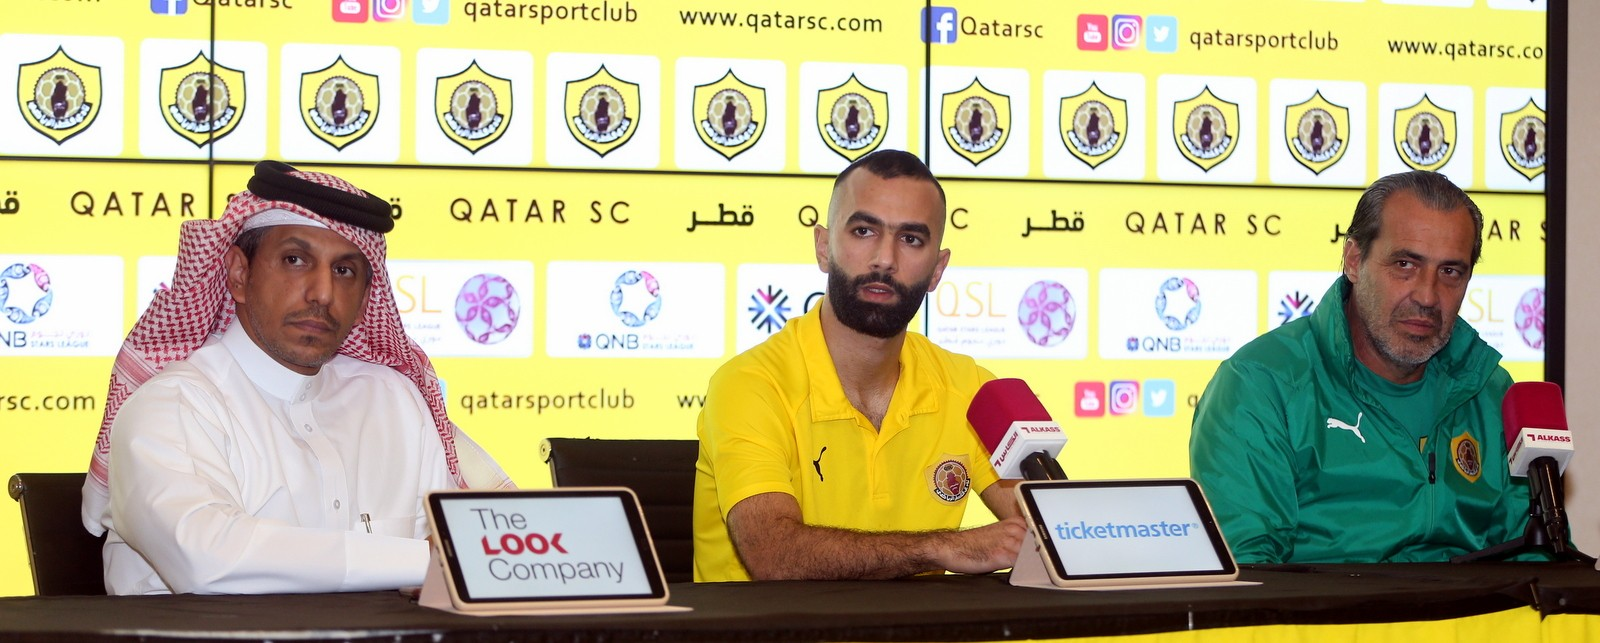 We are prepared to face Al Duhail: Qatar SC coach Batista